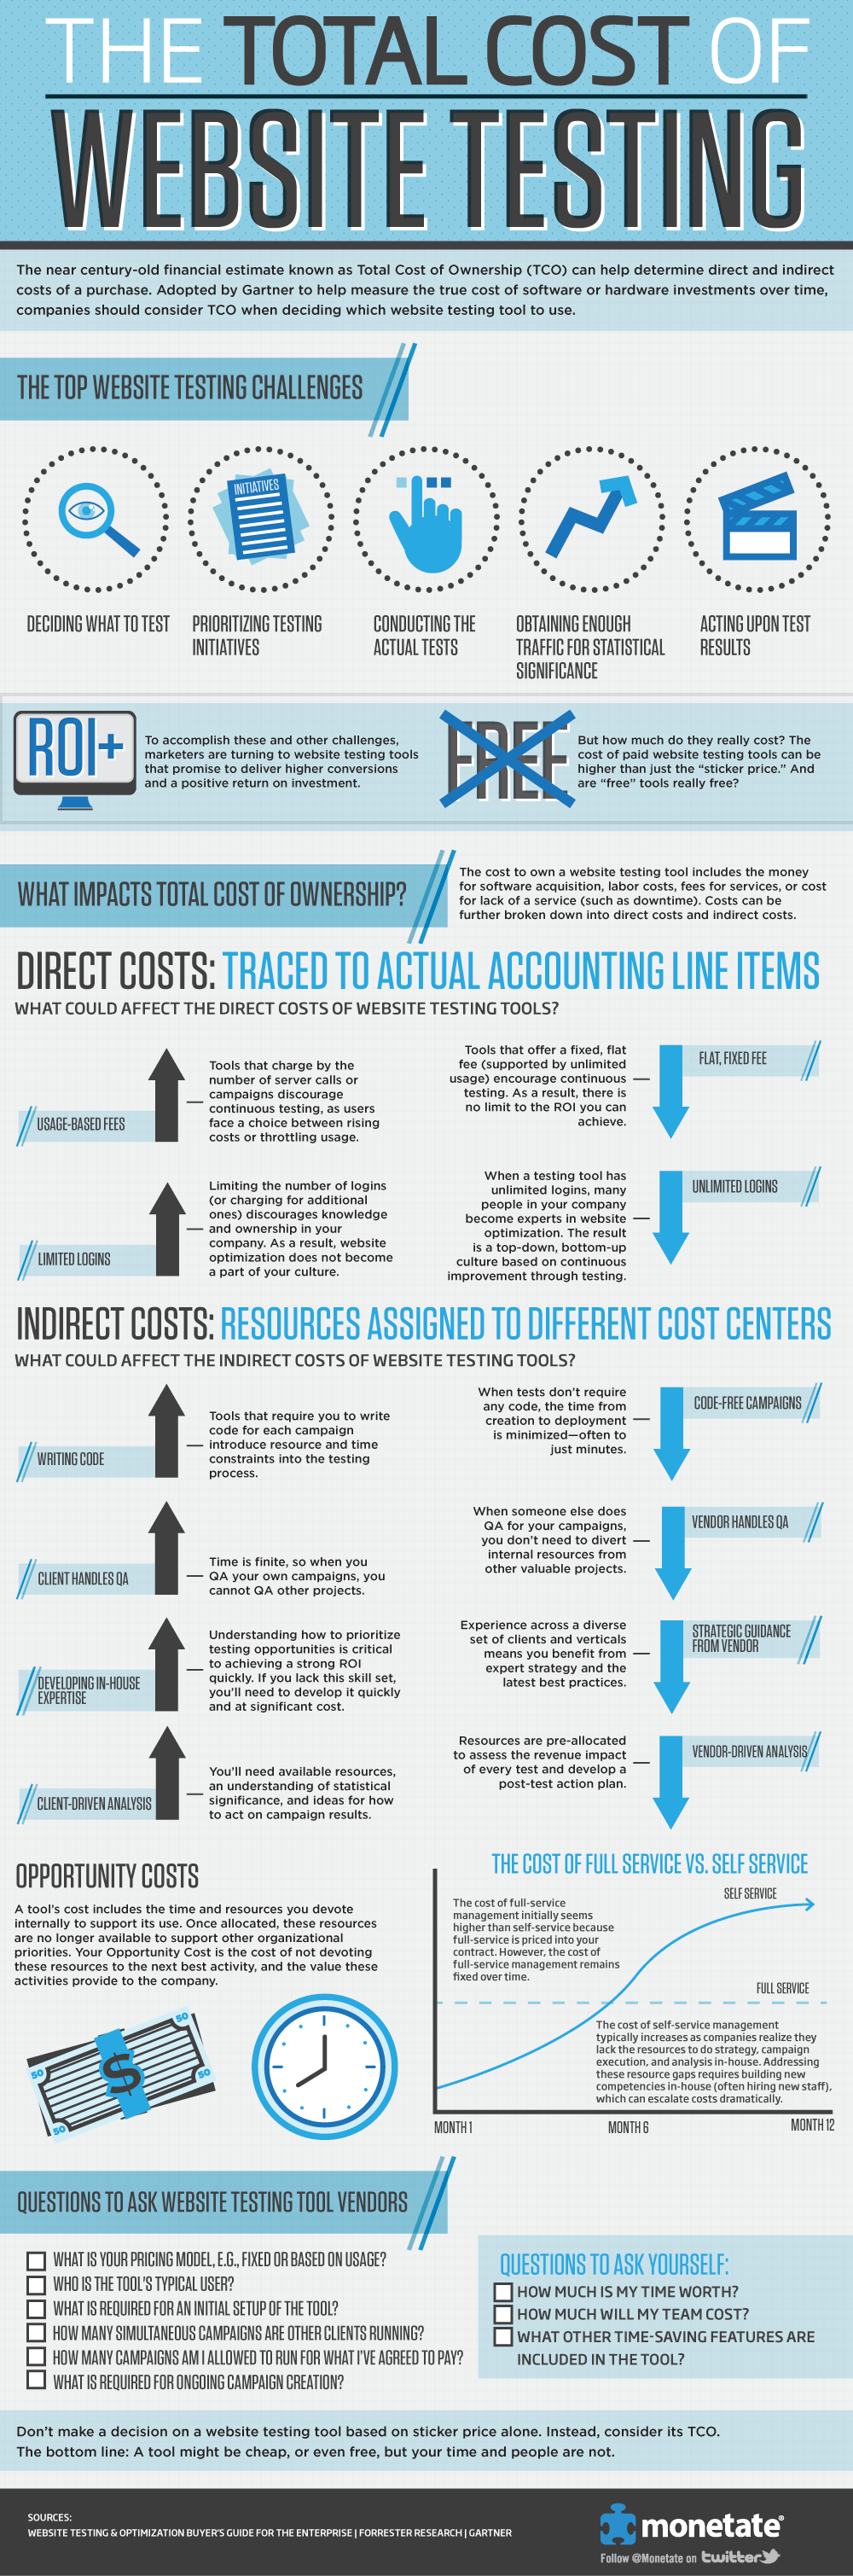 The-Total-Cost-of-Website-Testing-Infographic